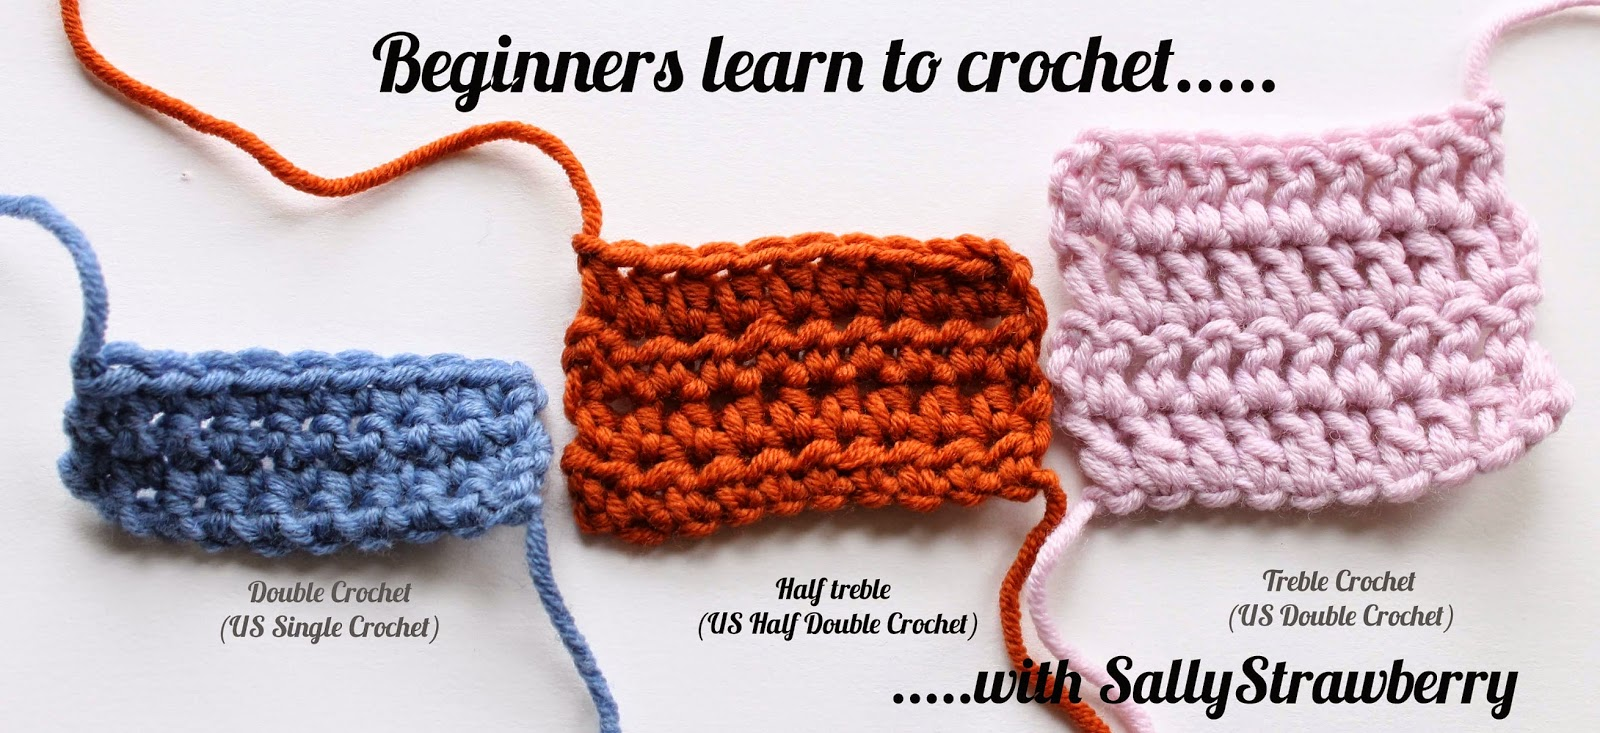 SallyStrawberry: Beginners learn to crochet: Half-treble crochet